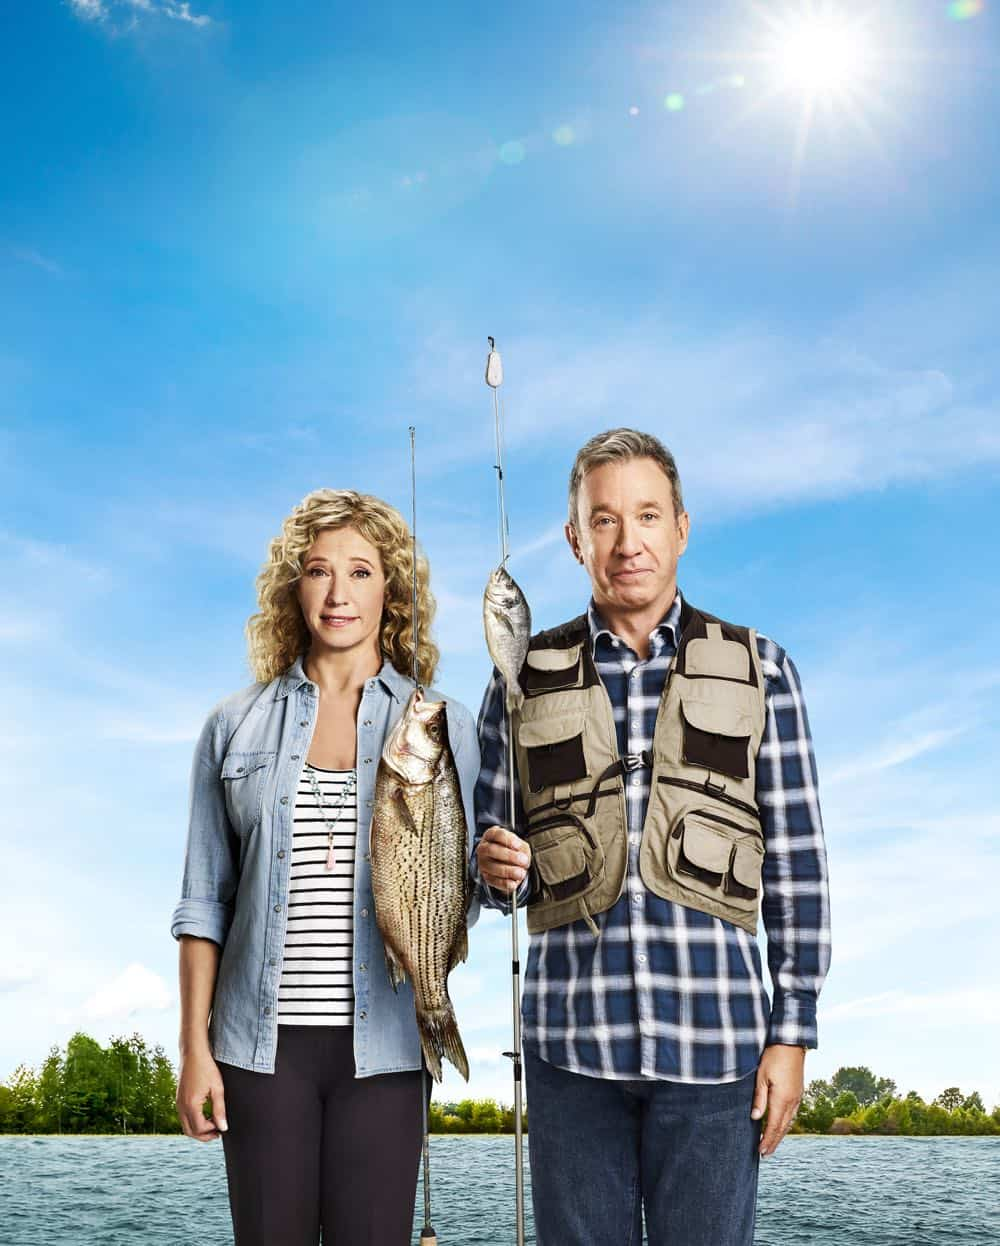 LAST MAN STANDING: L-R: Tim Allen and Nancy Travis. CR: Elisabeth Caren / FOX. © 2018 FOX Broadcasting.